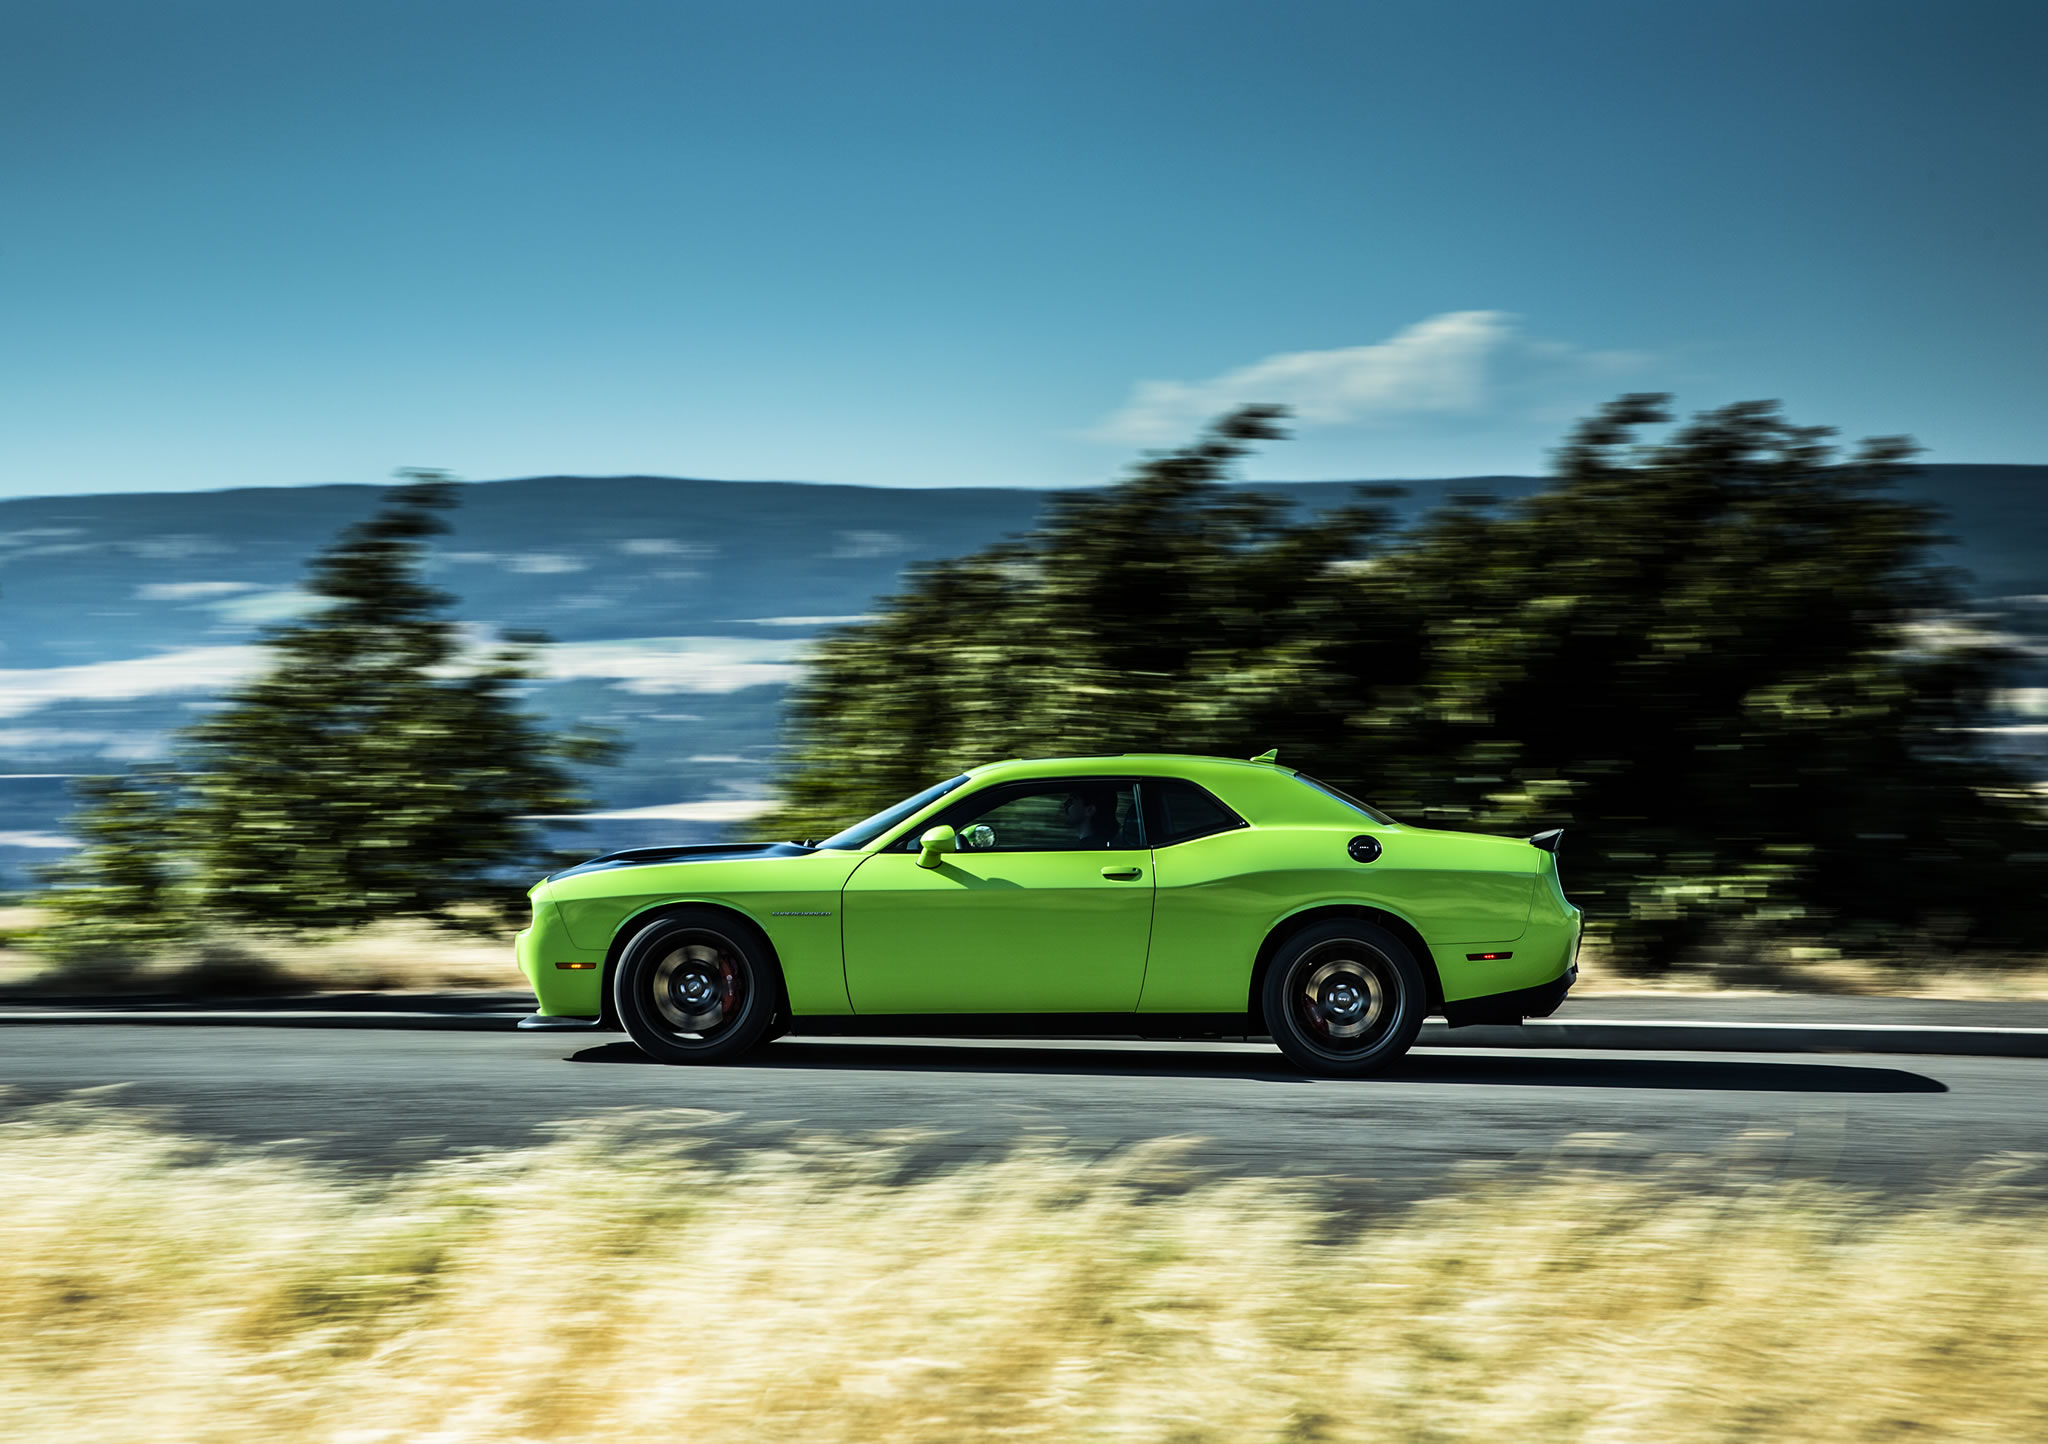 New dodge challenger 2018 2017 2018 best car reviews - Fuel Economy For Challenger Hellcat Autos Post